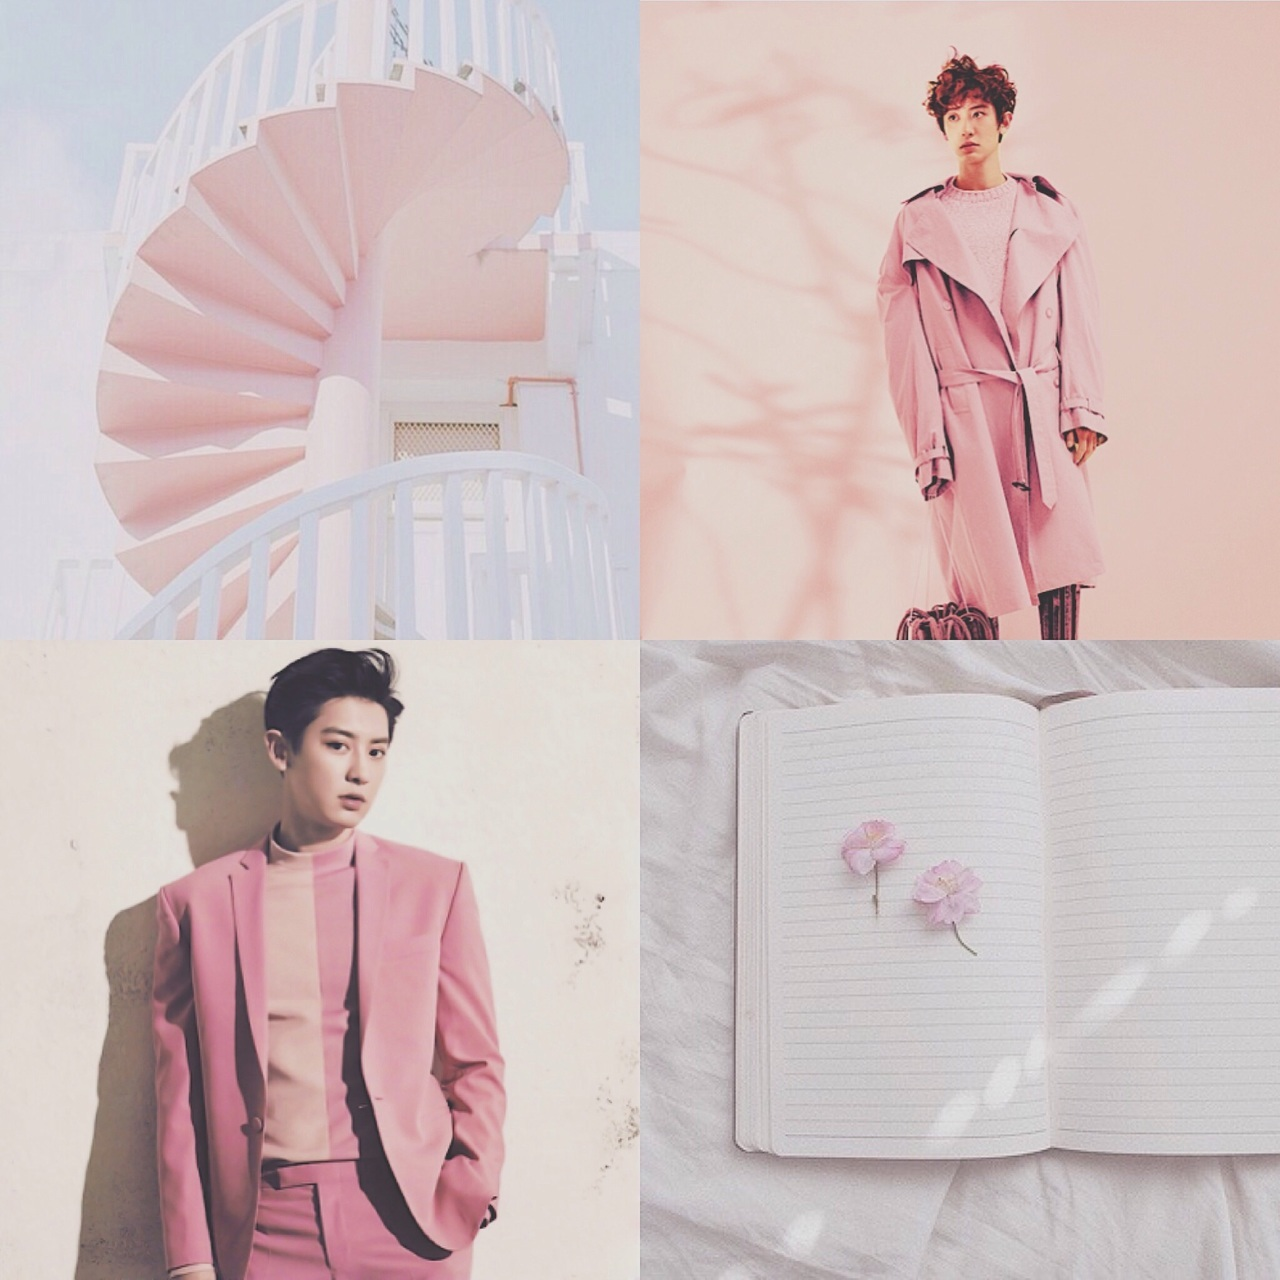 exo, moodboard, and pastel image